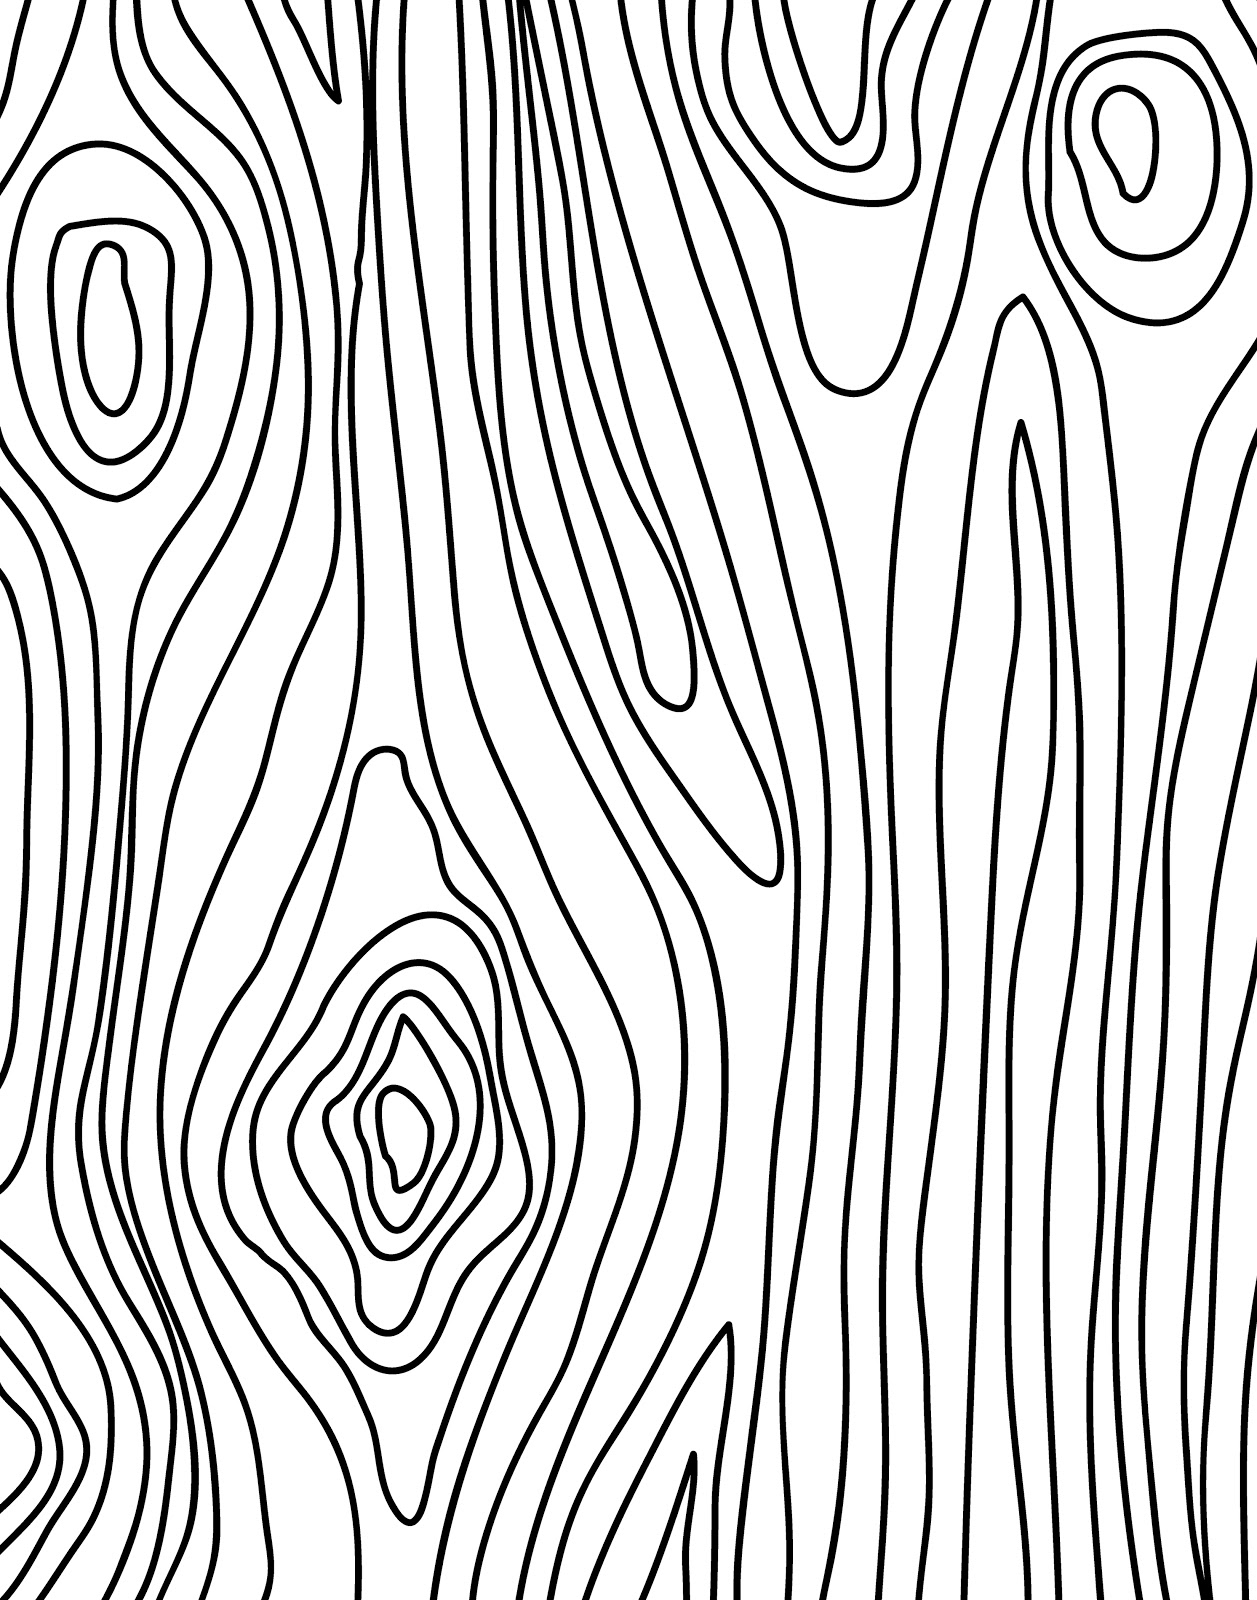 Grain effect clipart image freeuse download Free Grain Cliparts, Download Free Clip Art, Free Clip Art on ... image freeuse download